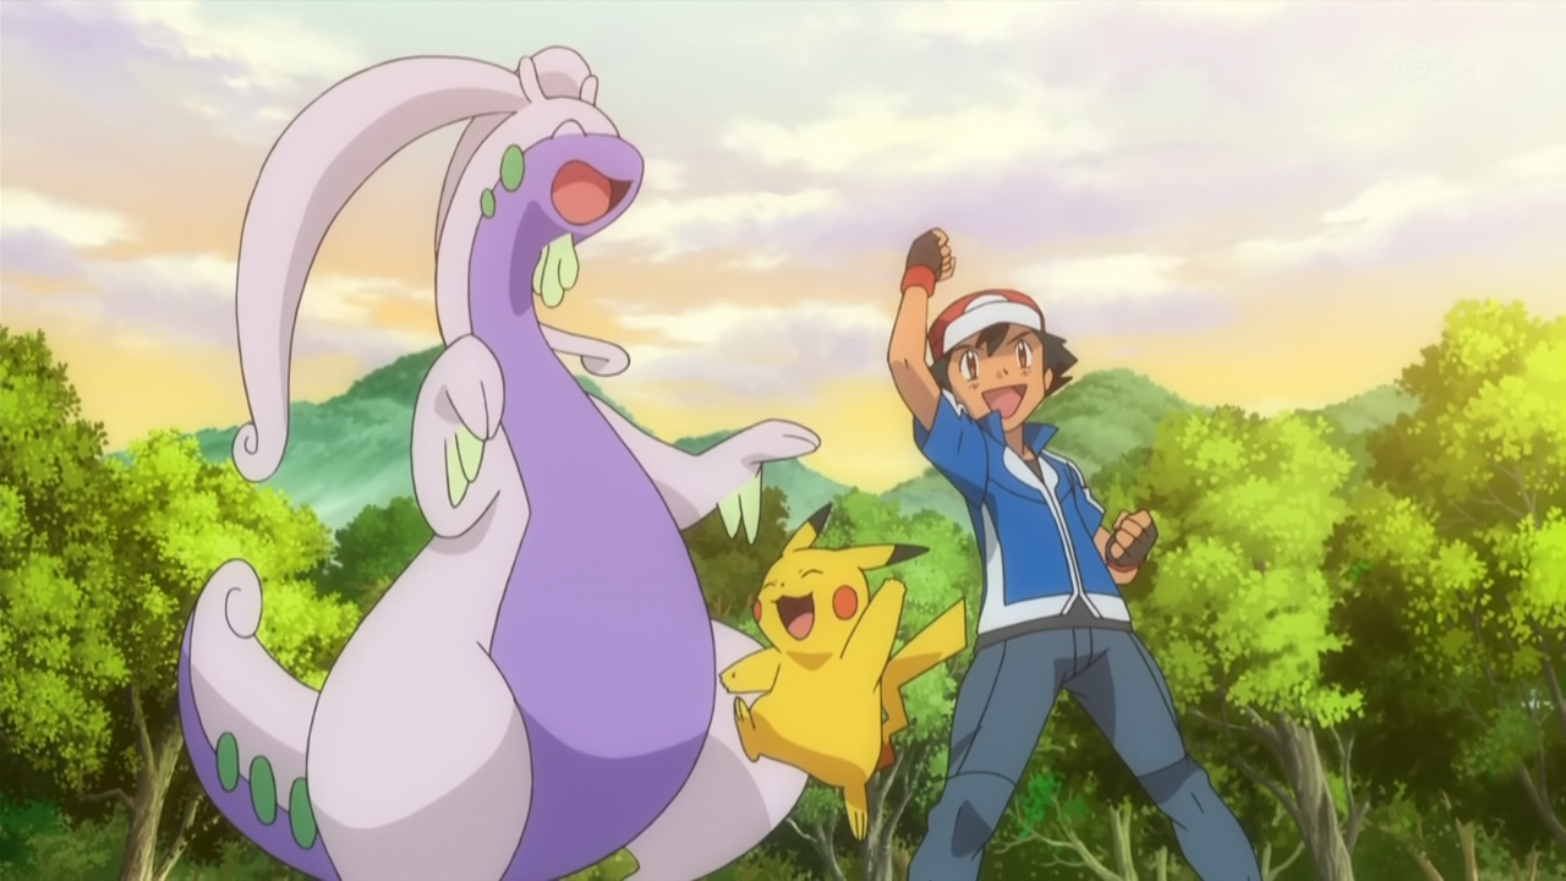 http://vignette3.wikia.nocookie.net/pokemon/images/9/9f/Ash_and_Goodra.png/revision/